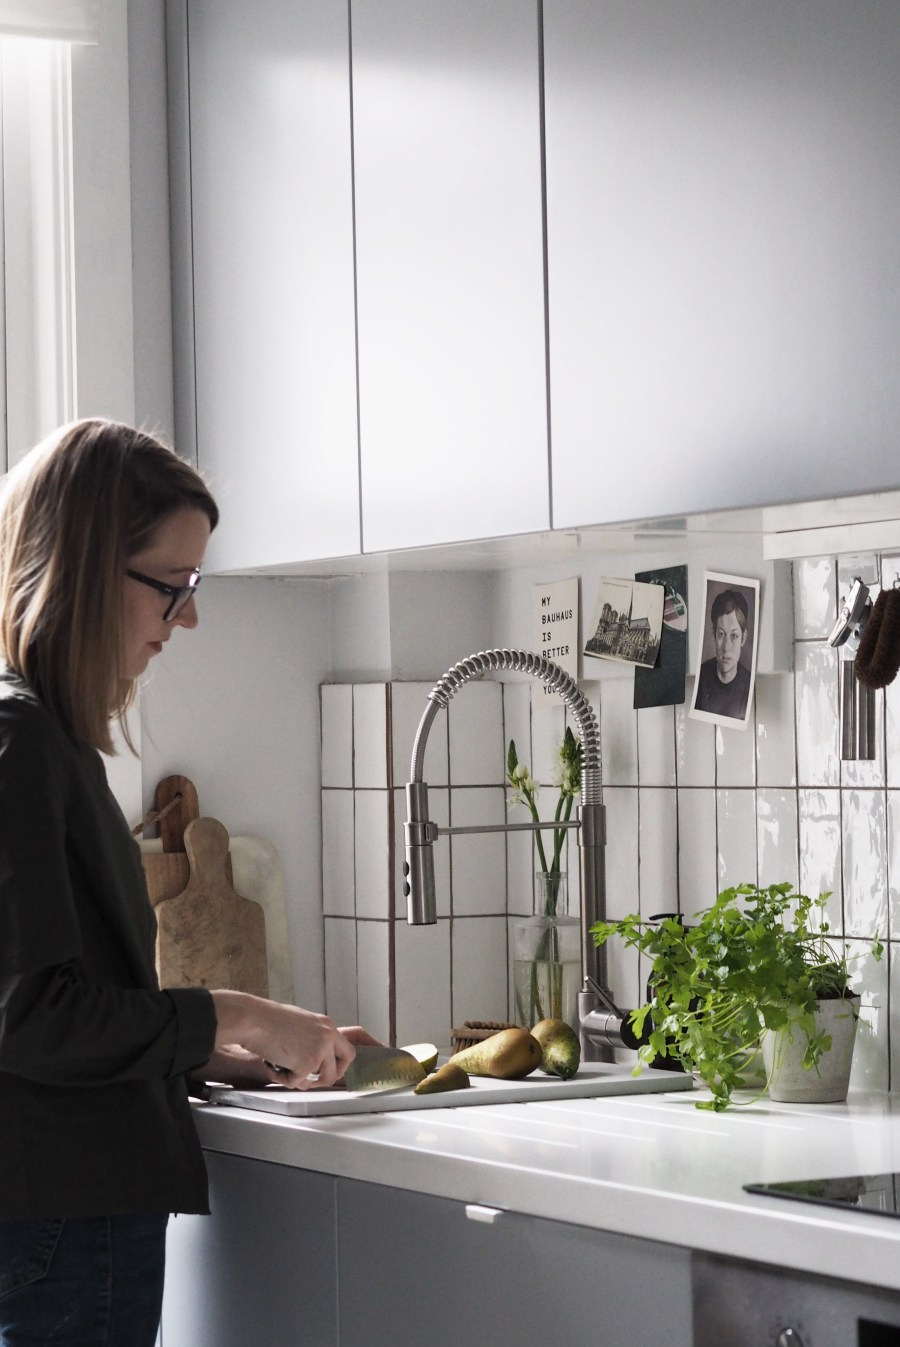 My Ikea Kitchen Makeover Part 2 Small Space Storage Solutions Everyday Details Cate St Hill